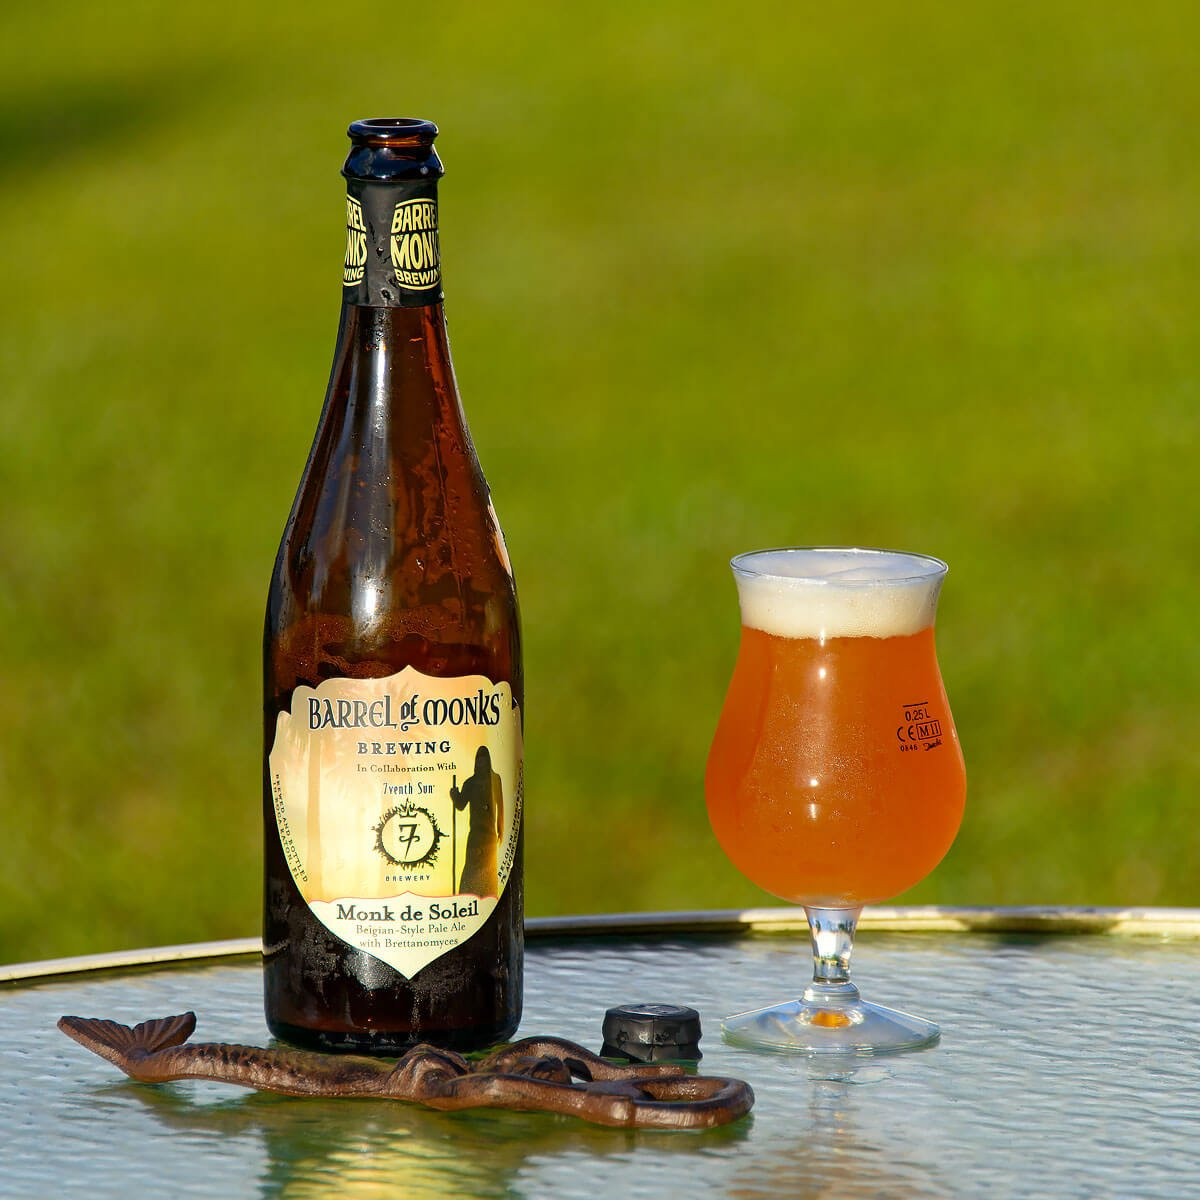 Monk de Soleil, a Belgian-style Pale Ale collaboratively brewed by Barrel of Monks Brewing and 7venth Sun Brewery